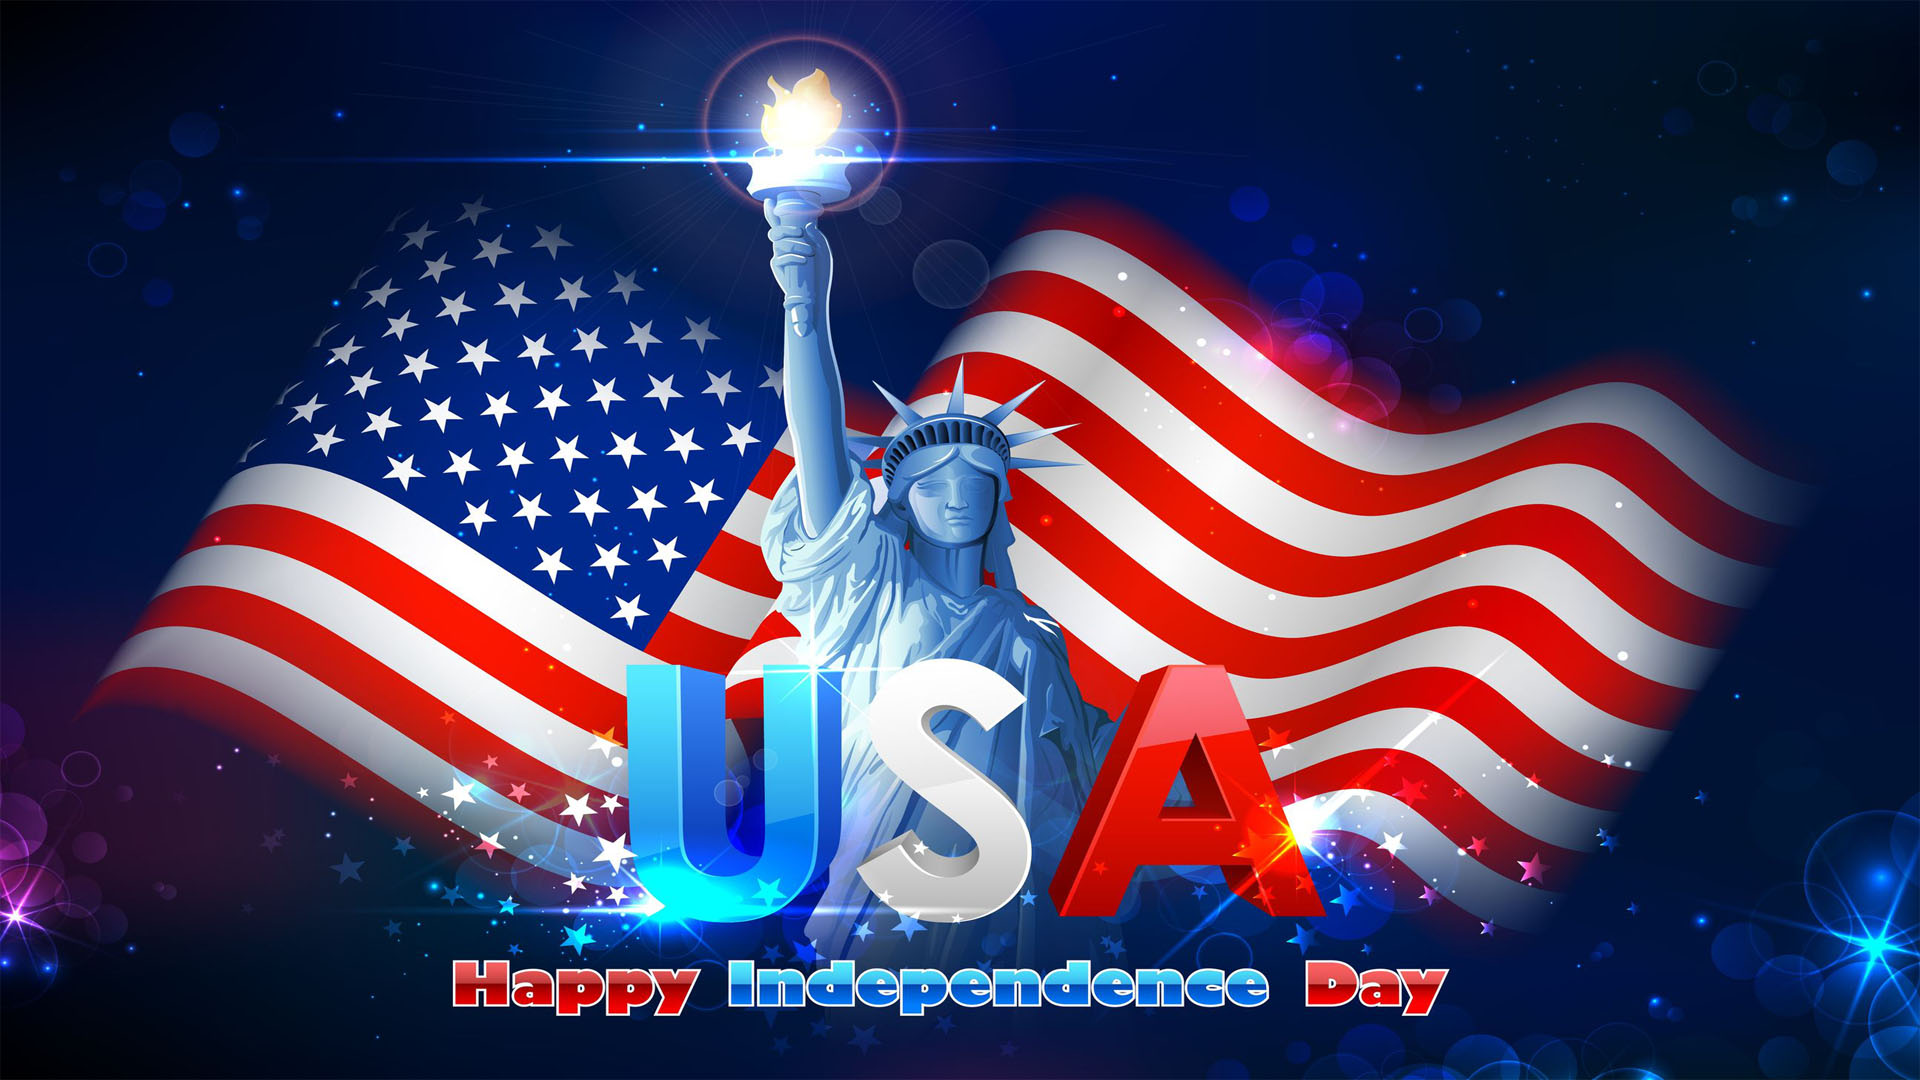 Fourth July USA Independence Day HD Wallpaper   Stylish HD Wallpapers 1920x1080